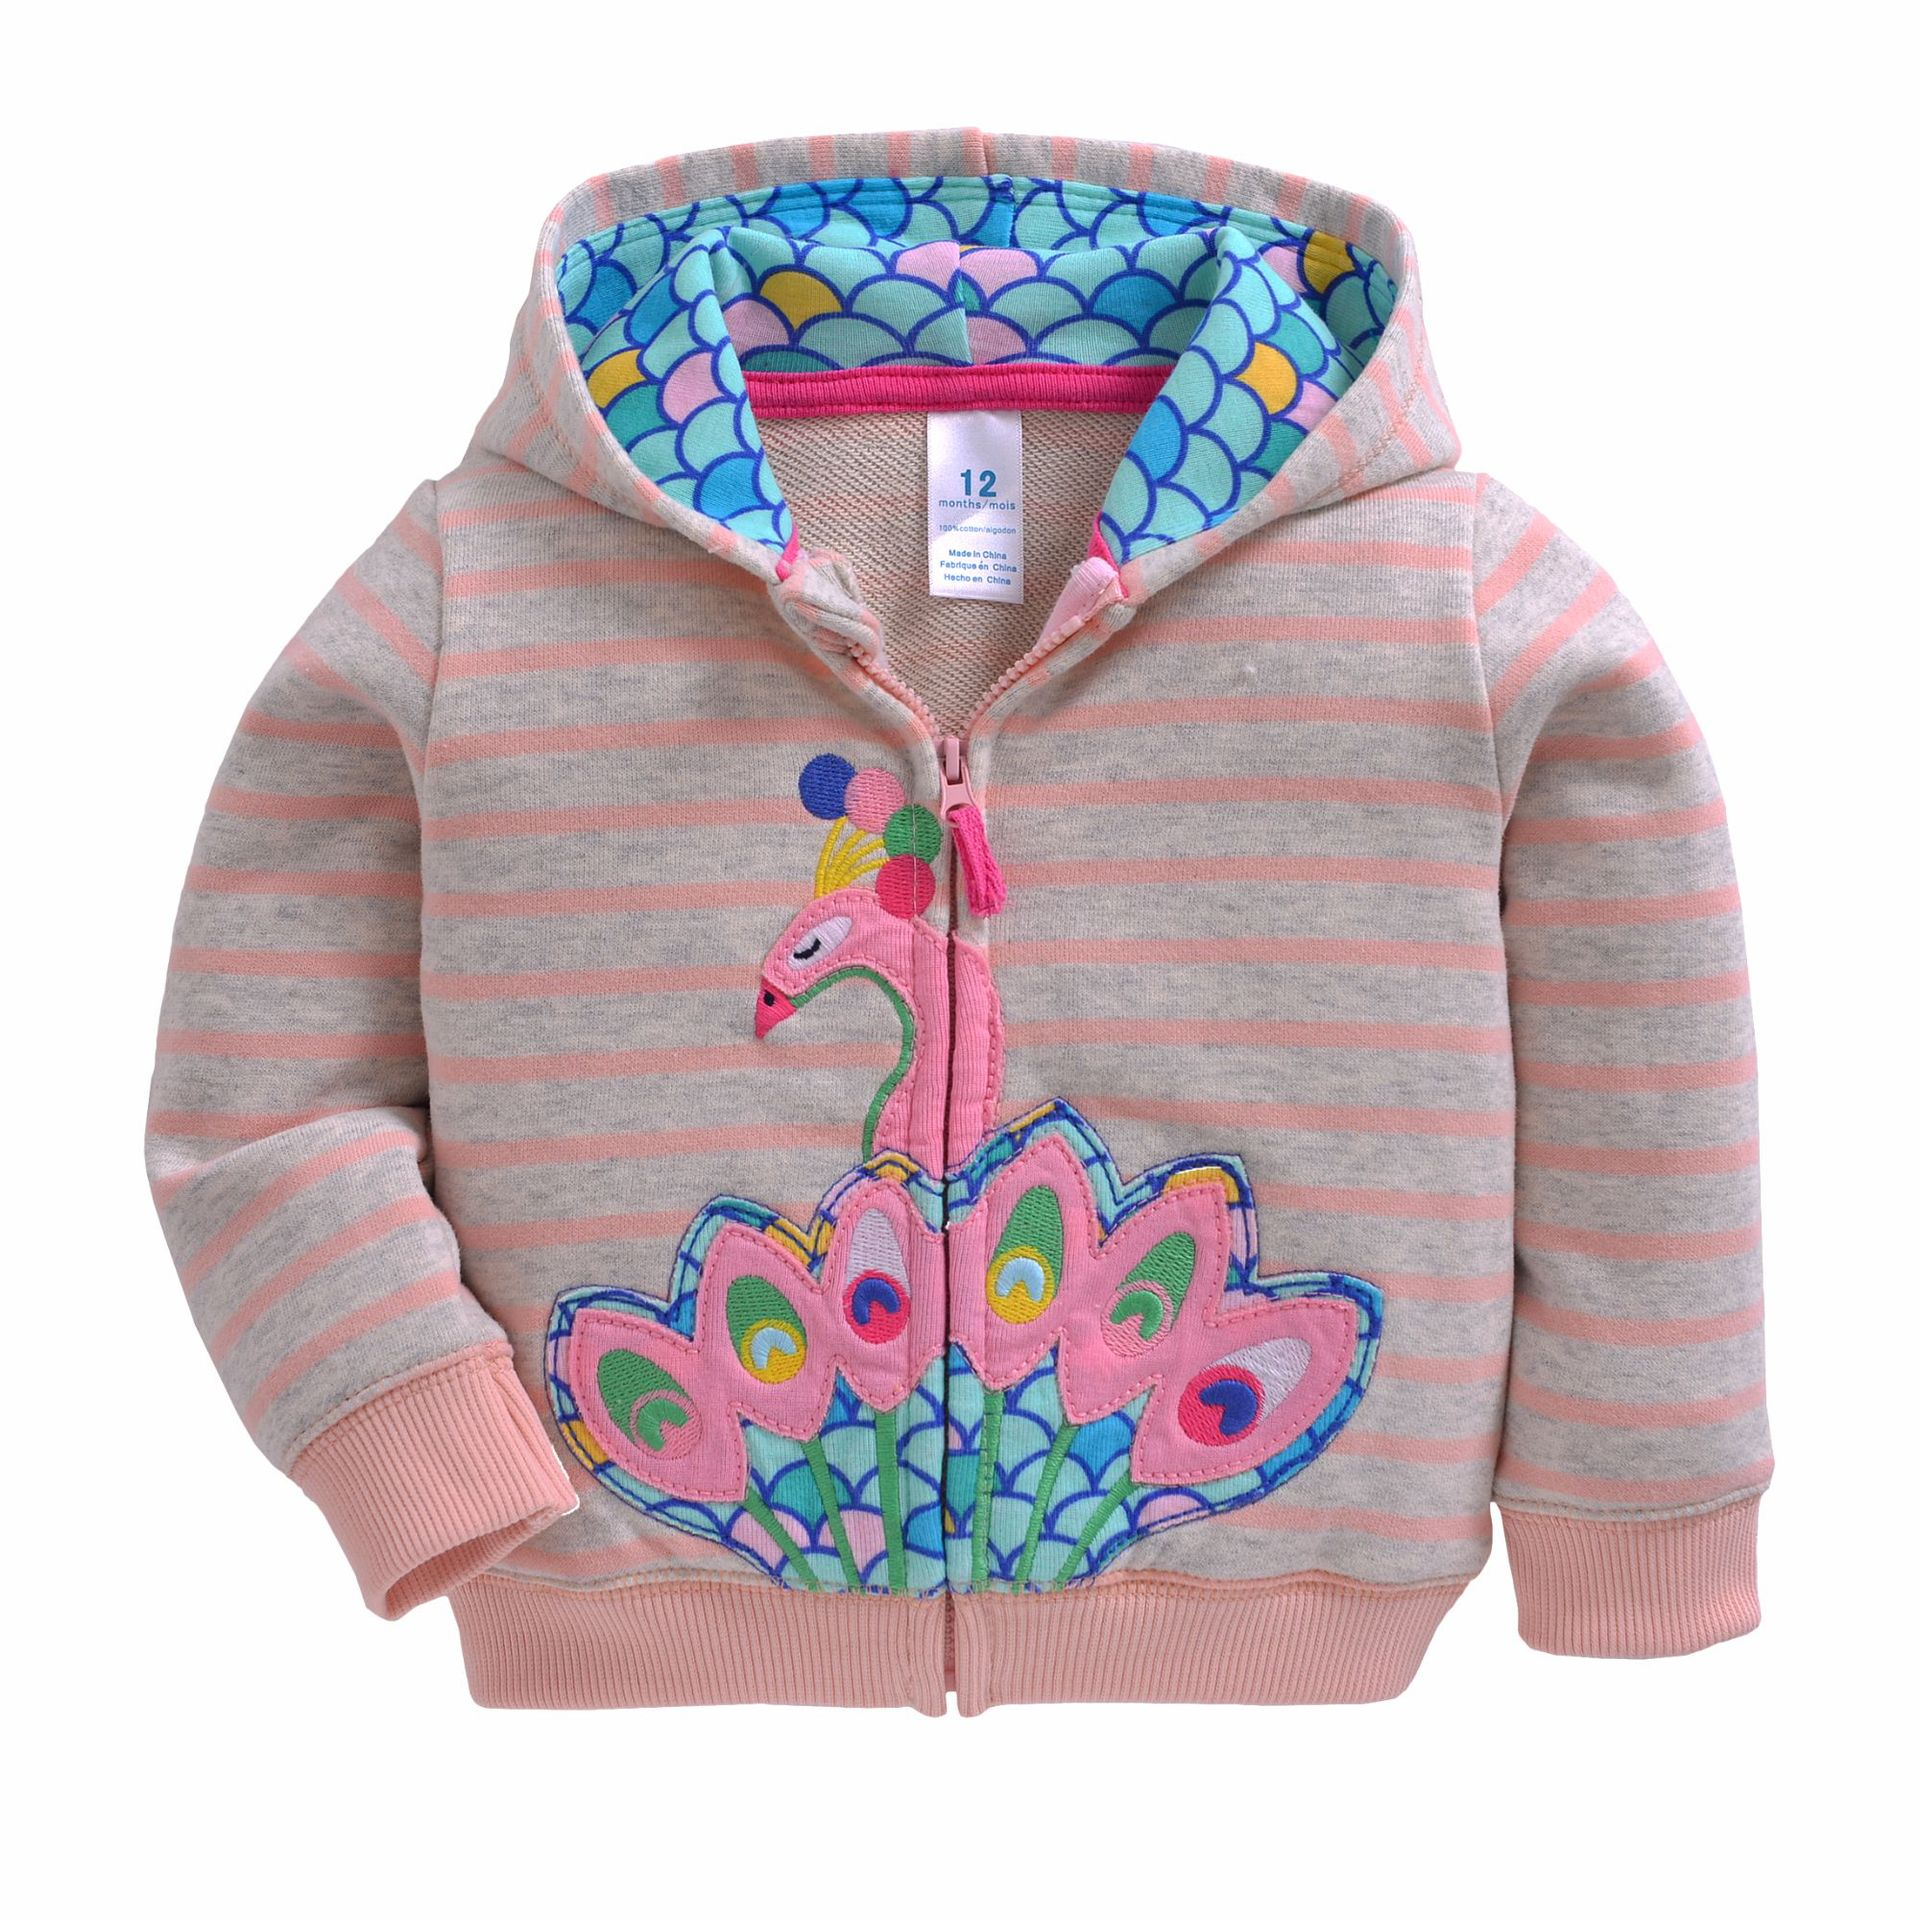 2019 Baby Boys Girls Hooded Sweatshirts Cotton Cartoon Tops Truck Flower Whale Out Wear Kids Clothes For 9m-3years